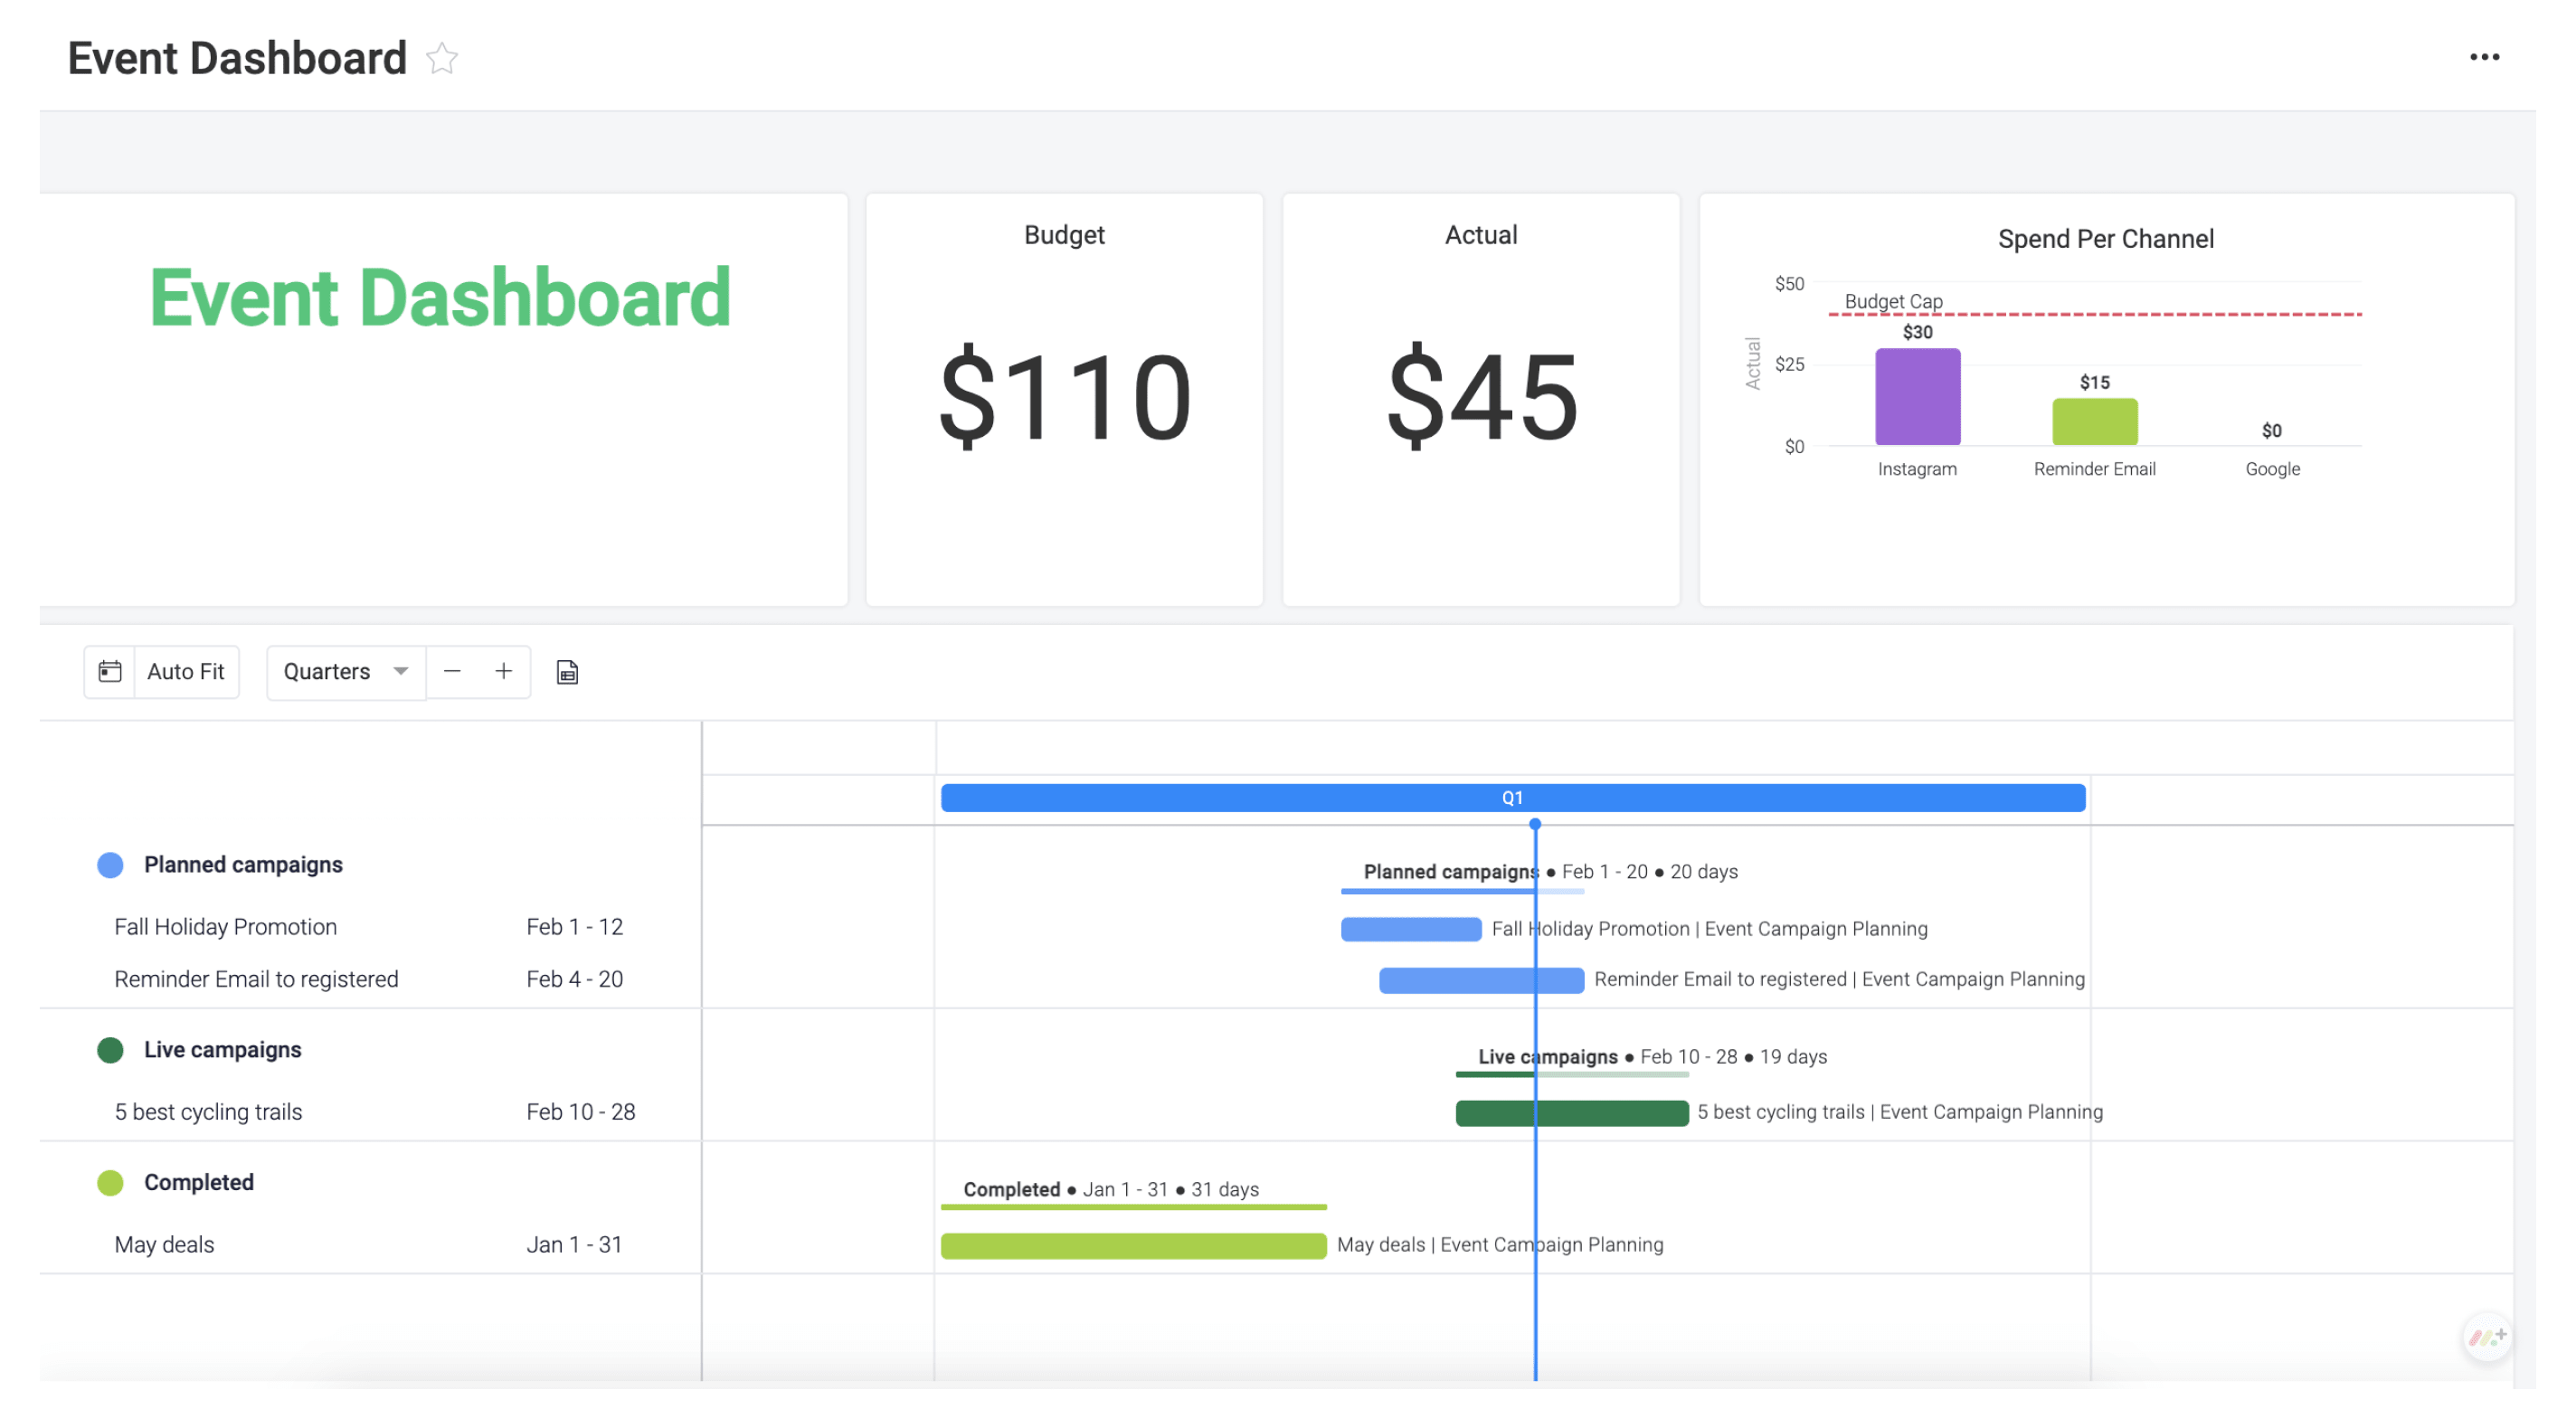 Event Dashboard Overview